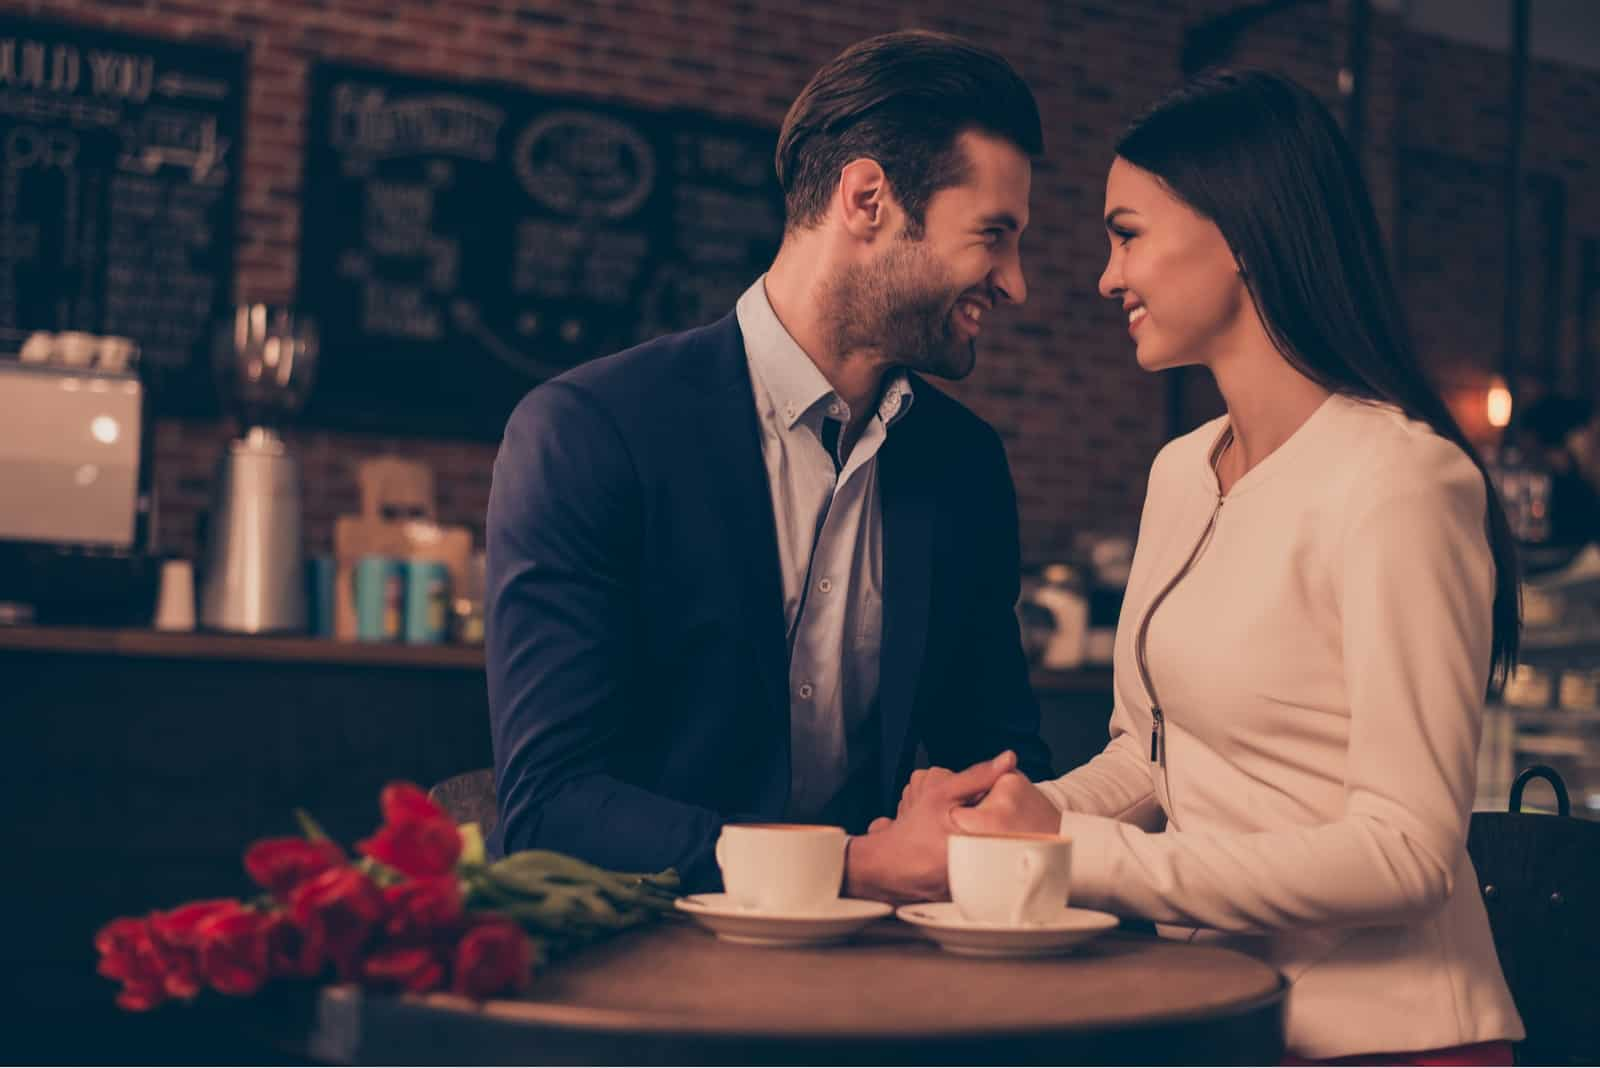 man and woman holding hands while sitting in cafe